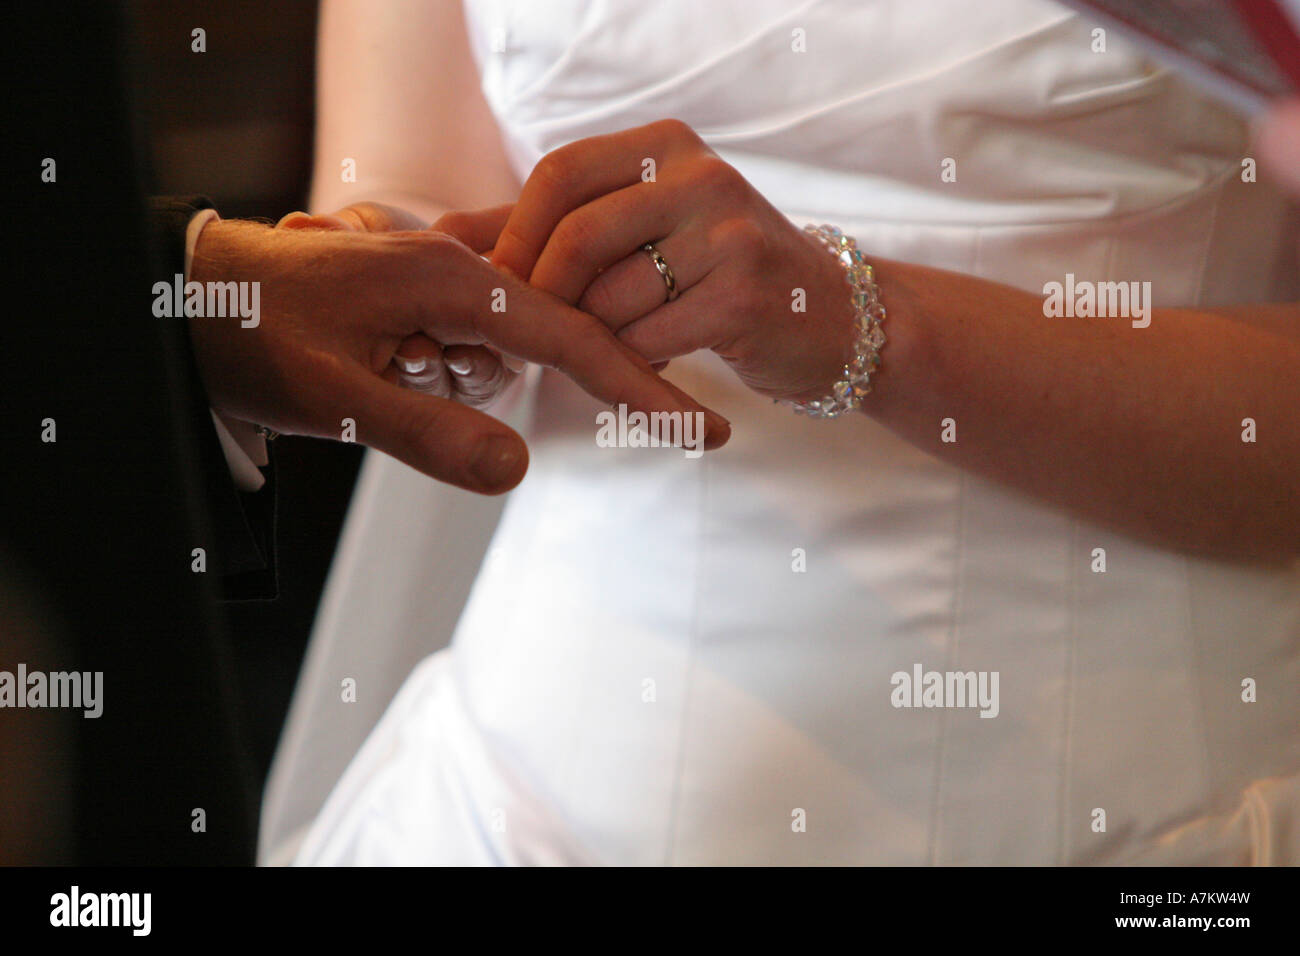 A Bride Pushes On Her Grooms Wedding Ring Band During The Exchange